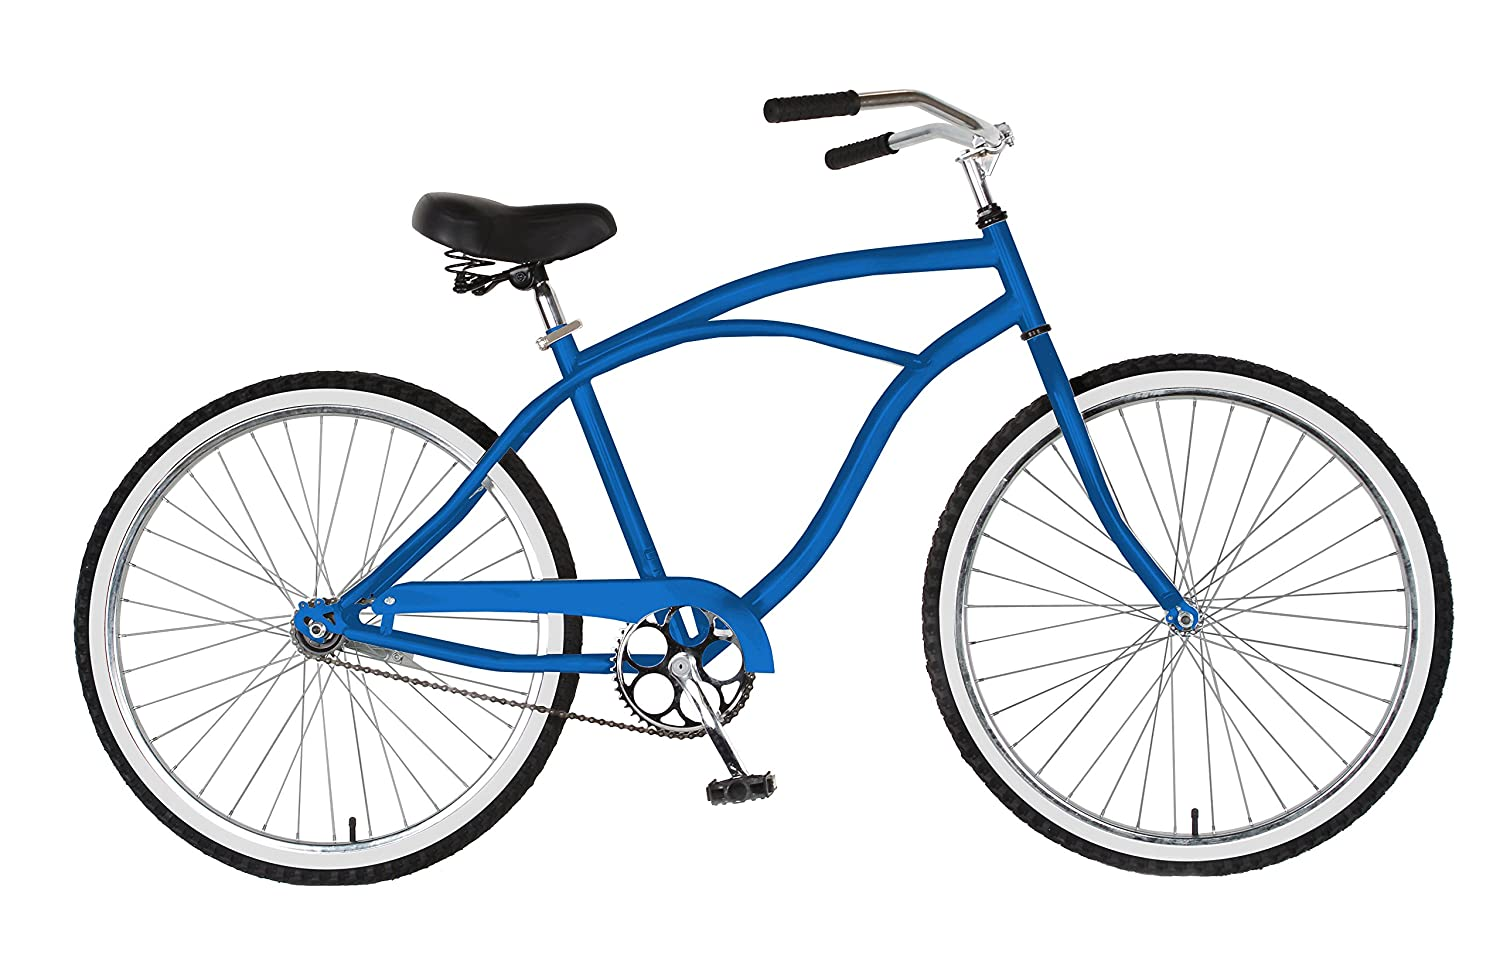 bluee Cycle Force Cruiser Bike, 26 inch Wheels, 18 inch Frame, Men's Bike, Black, bluee, Pink, Red, Silver, White